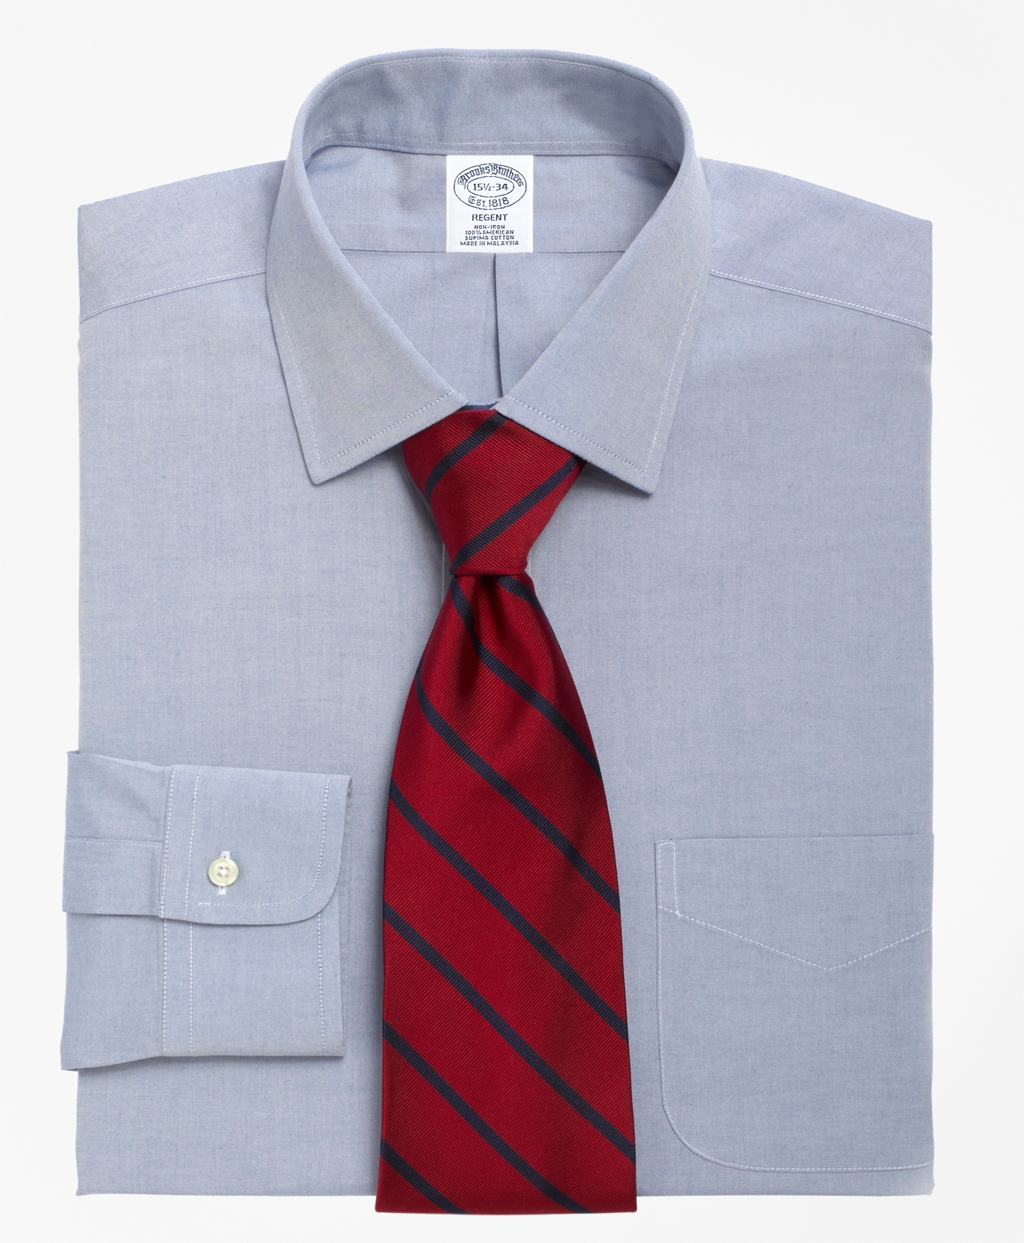 Men's Non-Iron Slim Fit Spread Collar Dress Shirt | Brooks Brothers